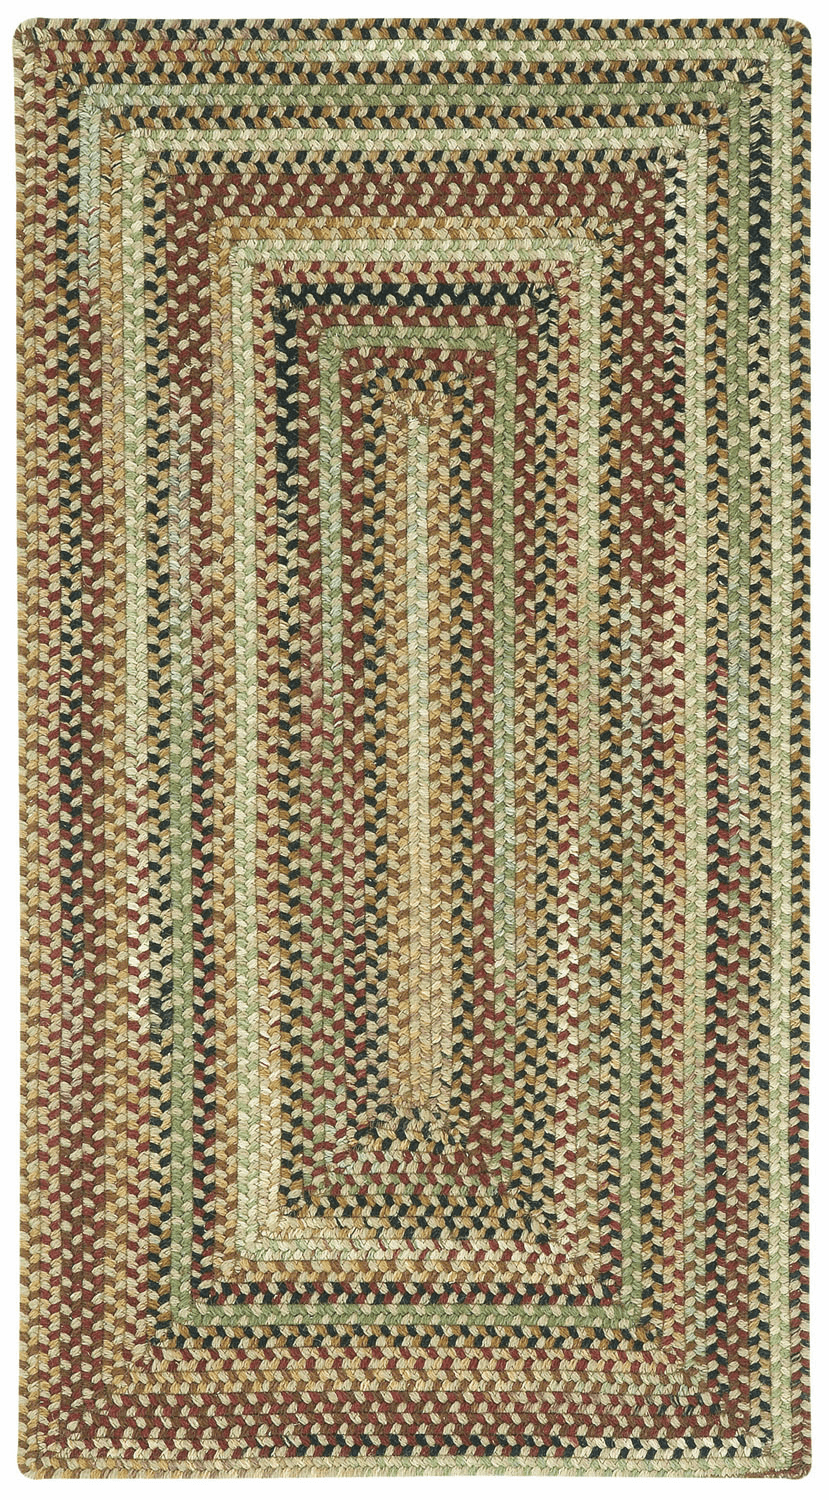 Hand-Braided Sandy Beige Rug